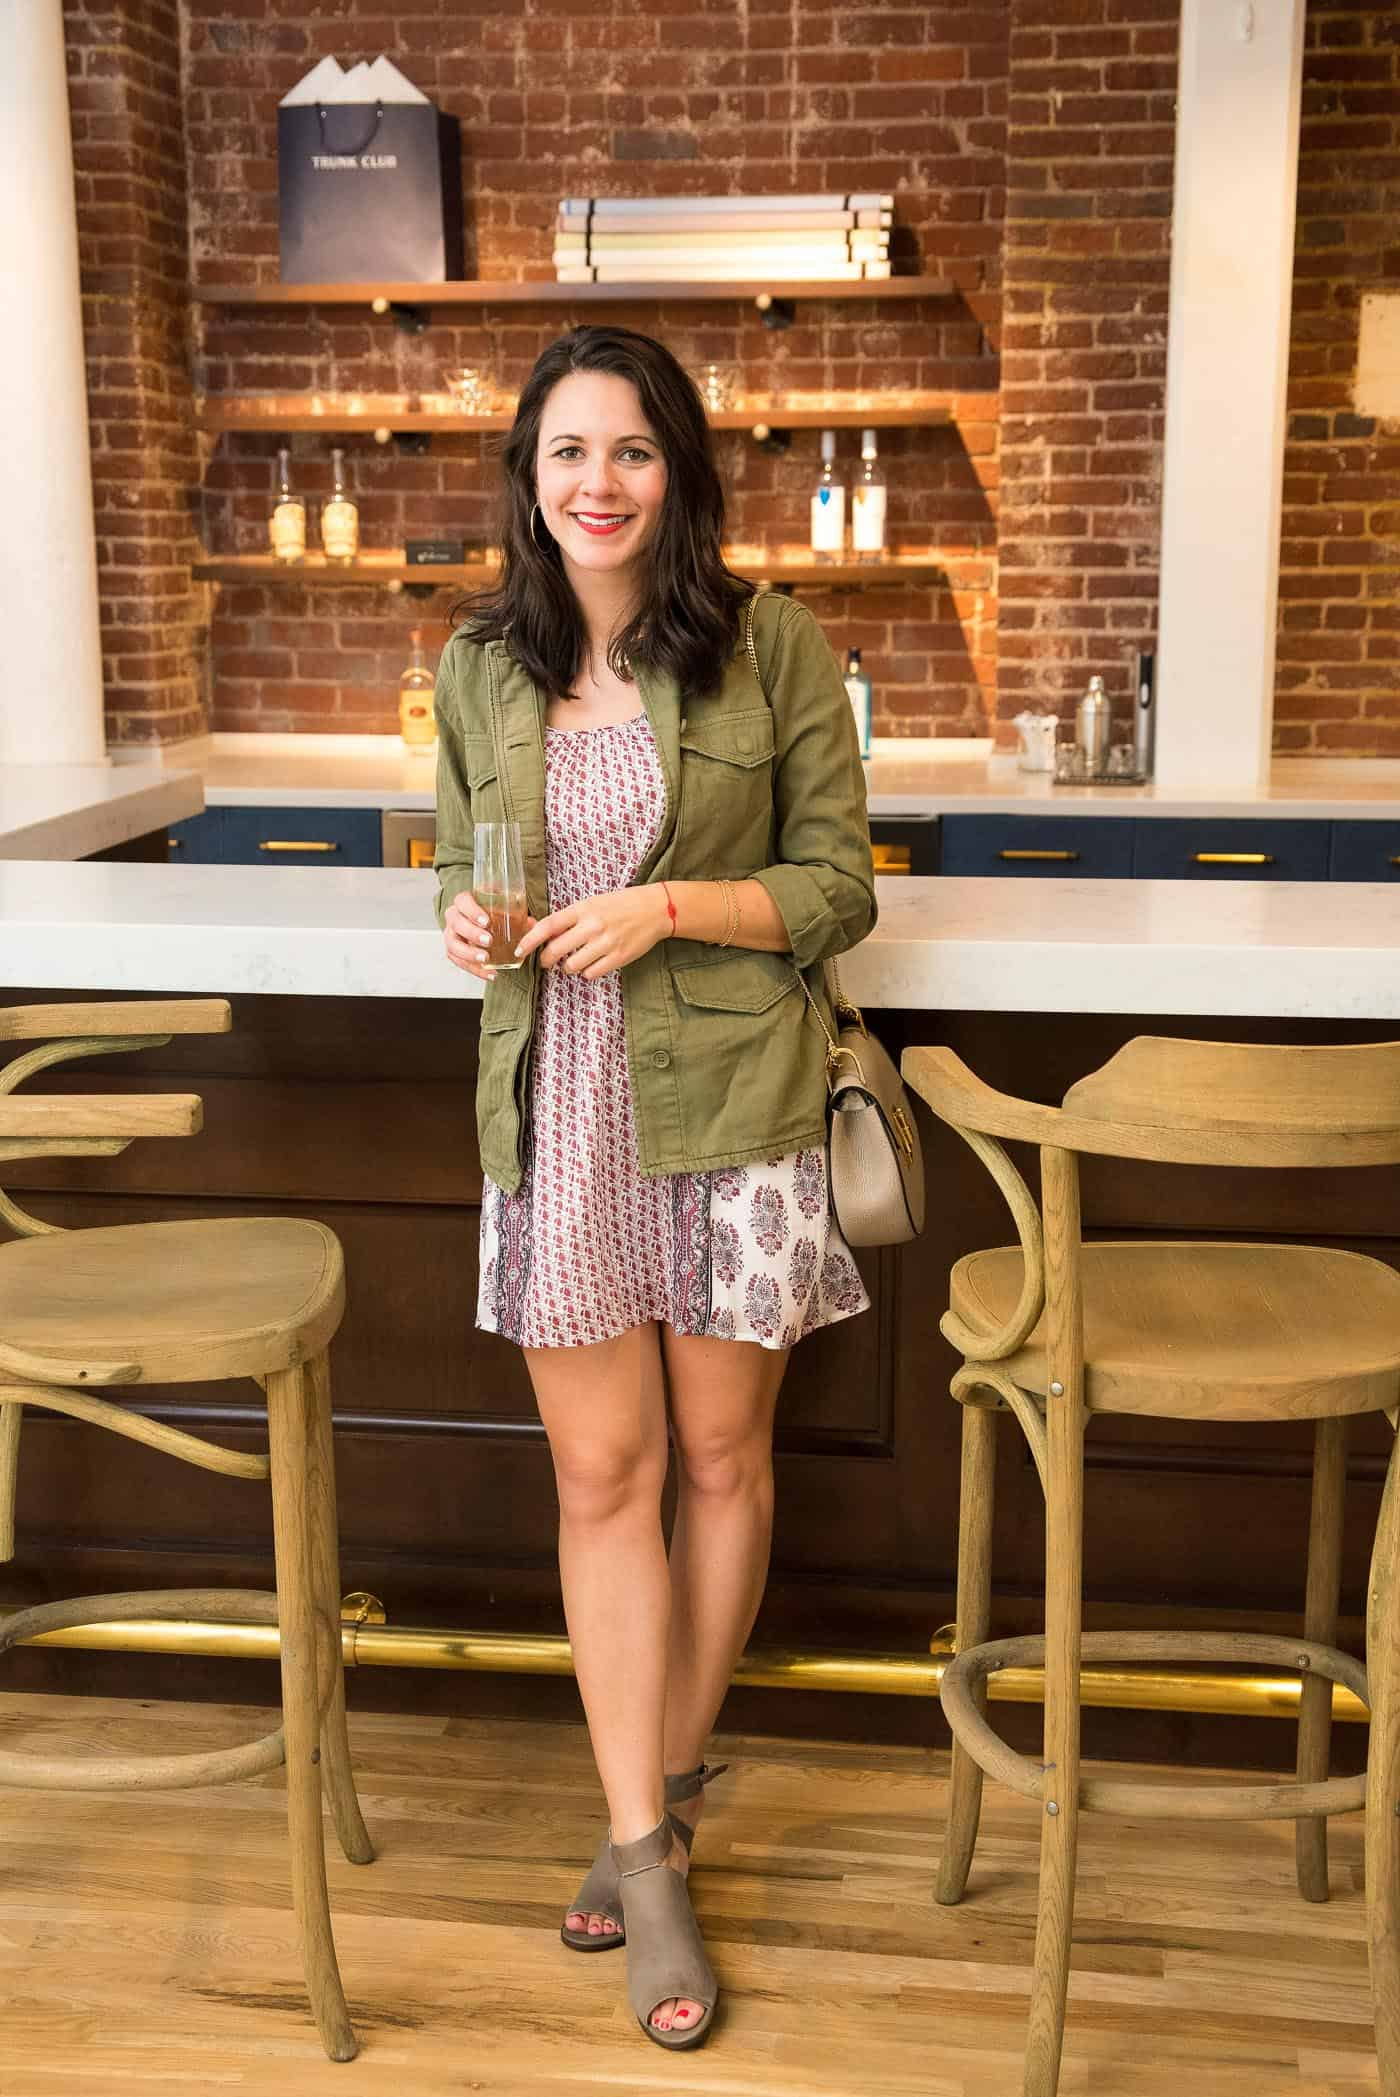 Festival outfit ideas with dresses, how to style a field jacket - My Style Vita @mystylevita